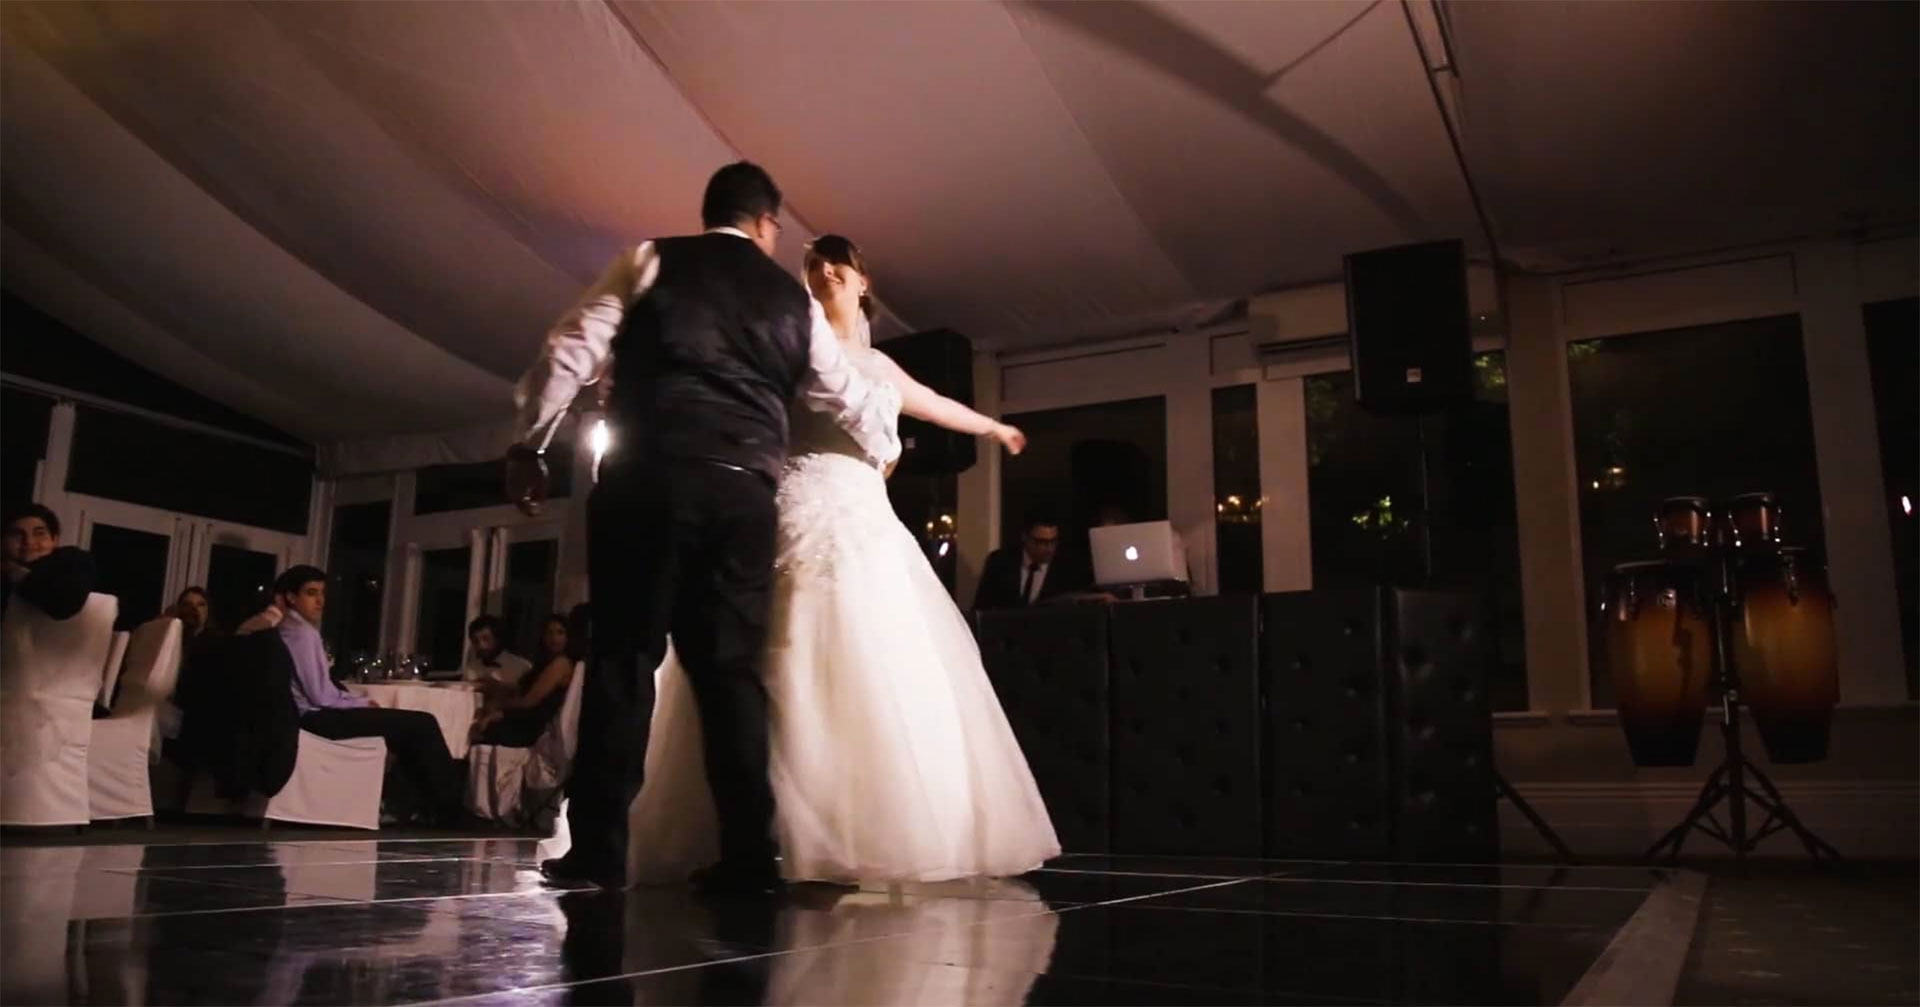 Paul & Caitlin Wedding video, Wedding Films